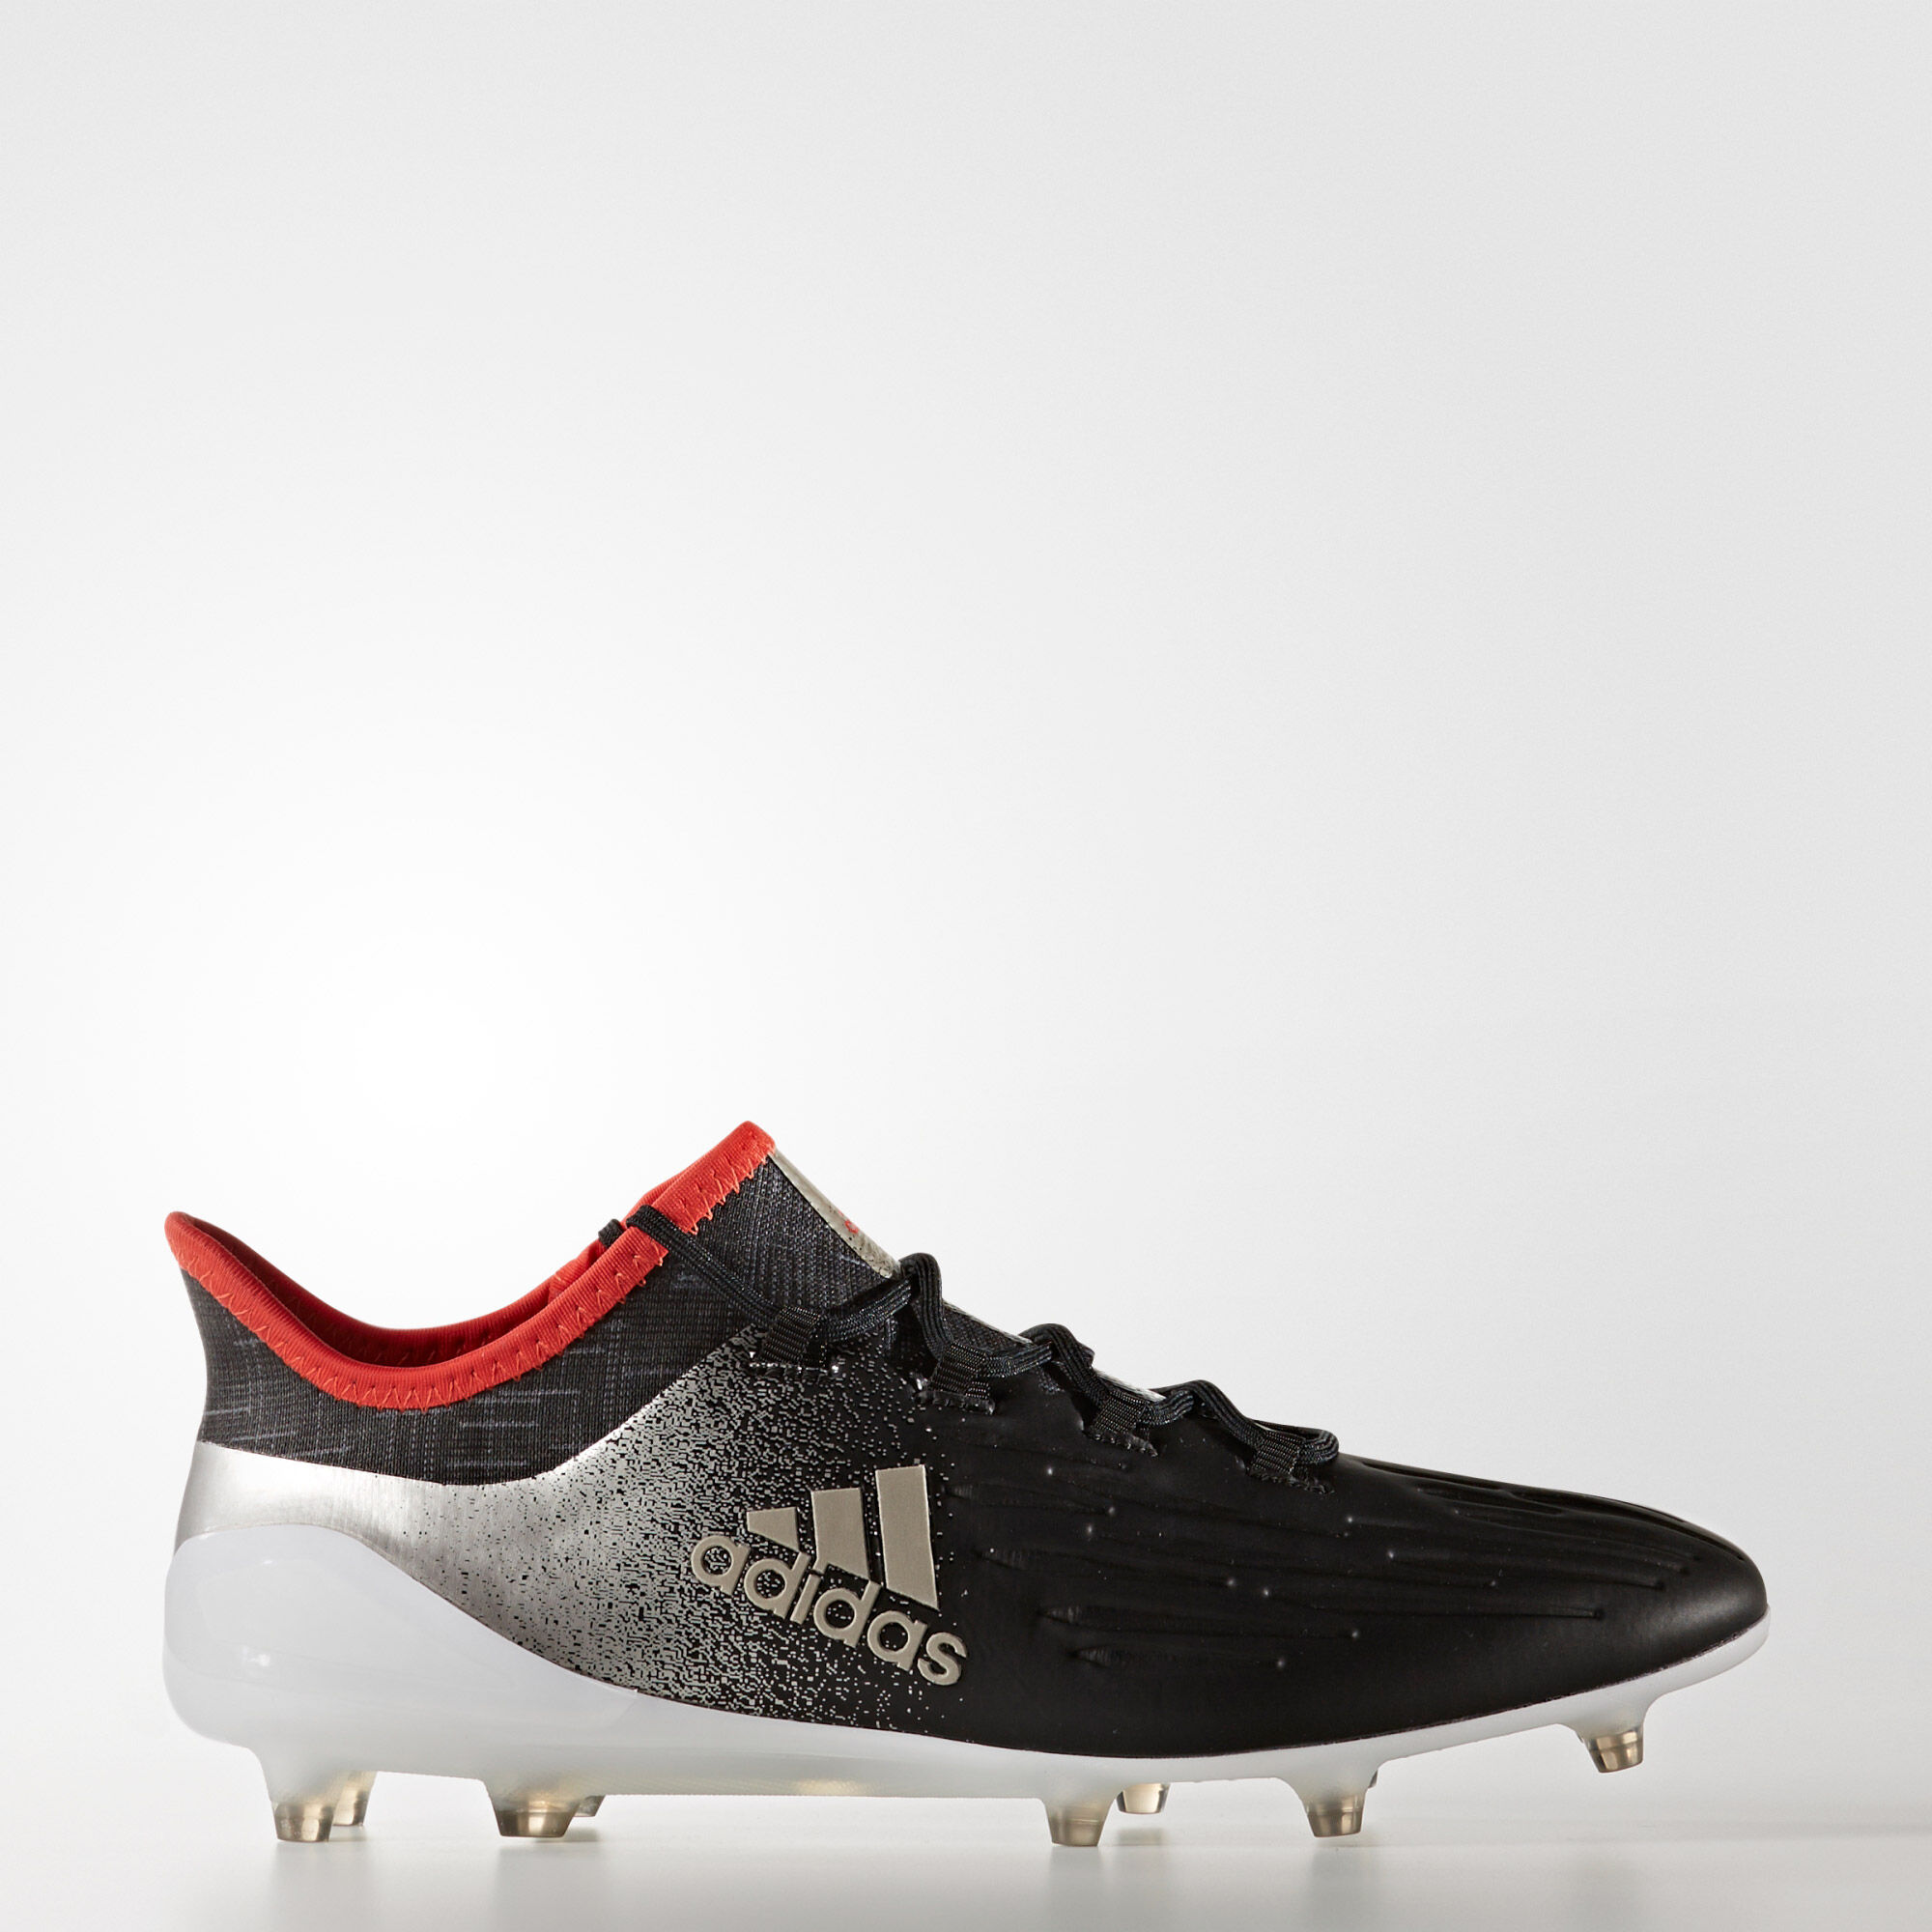 finest selection 0b371 f71a0 adidas ACE 16+ Purecontrol FG Soccer Cleats  adidas - X 17.1 Firm Ground  Cleats Core Black BA8561